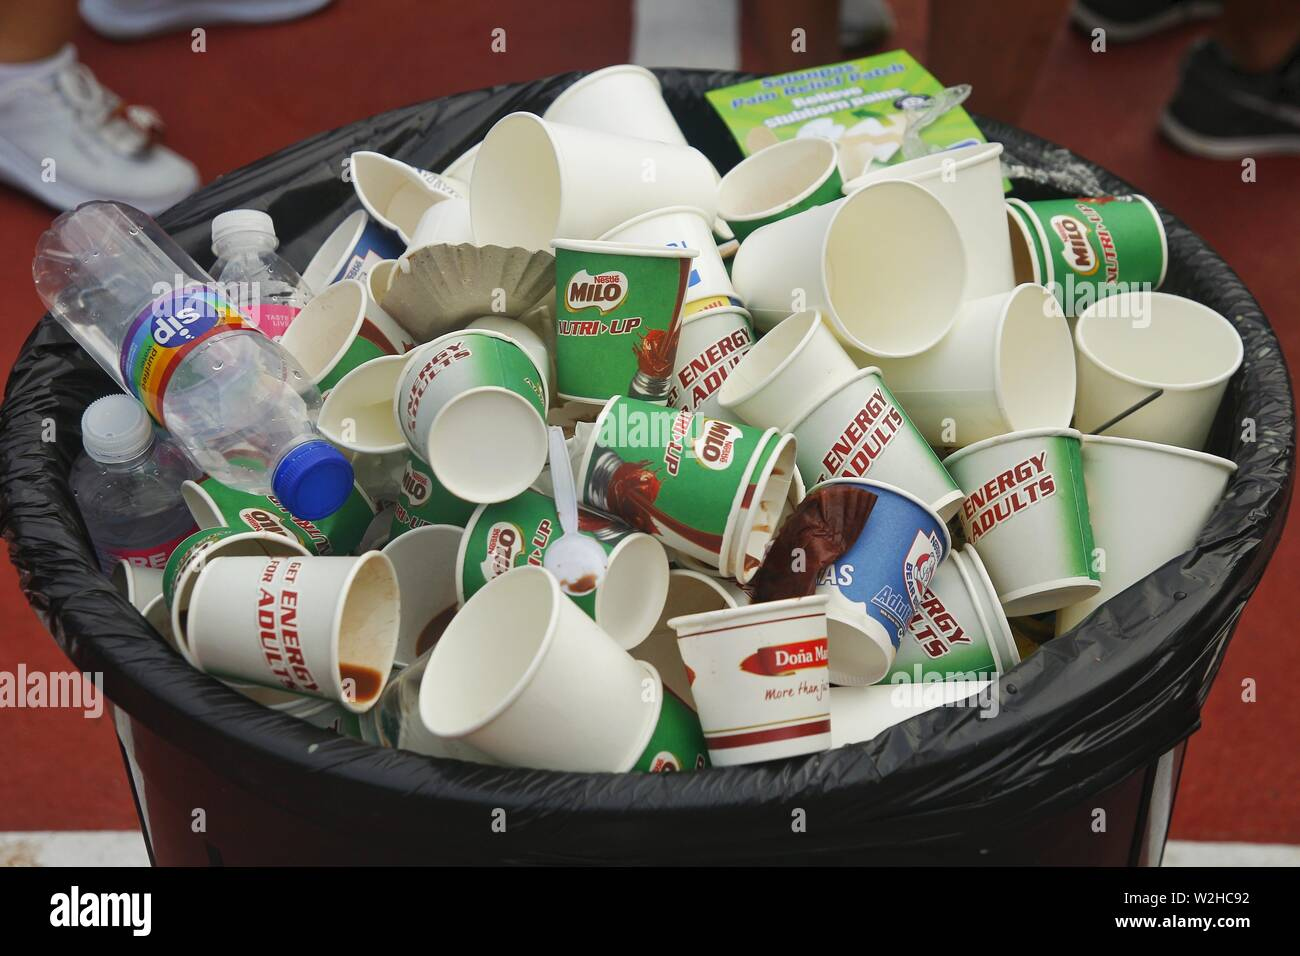 QUEZON CITY, PHILIPPINES – JULY 7, 2019: Plastic and paper cups in a garbage or trash bin and feet of people standing next to it. - Stock Image